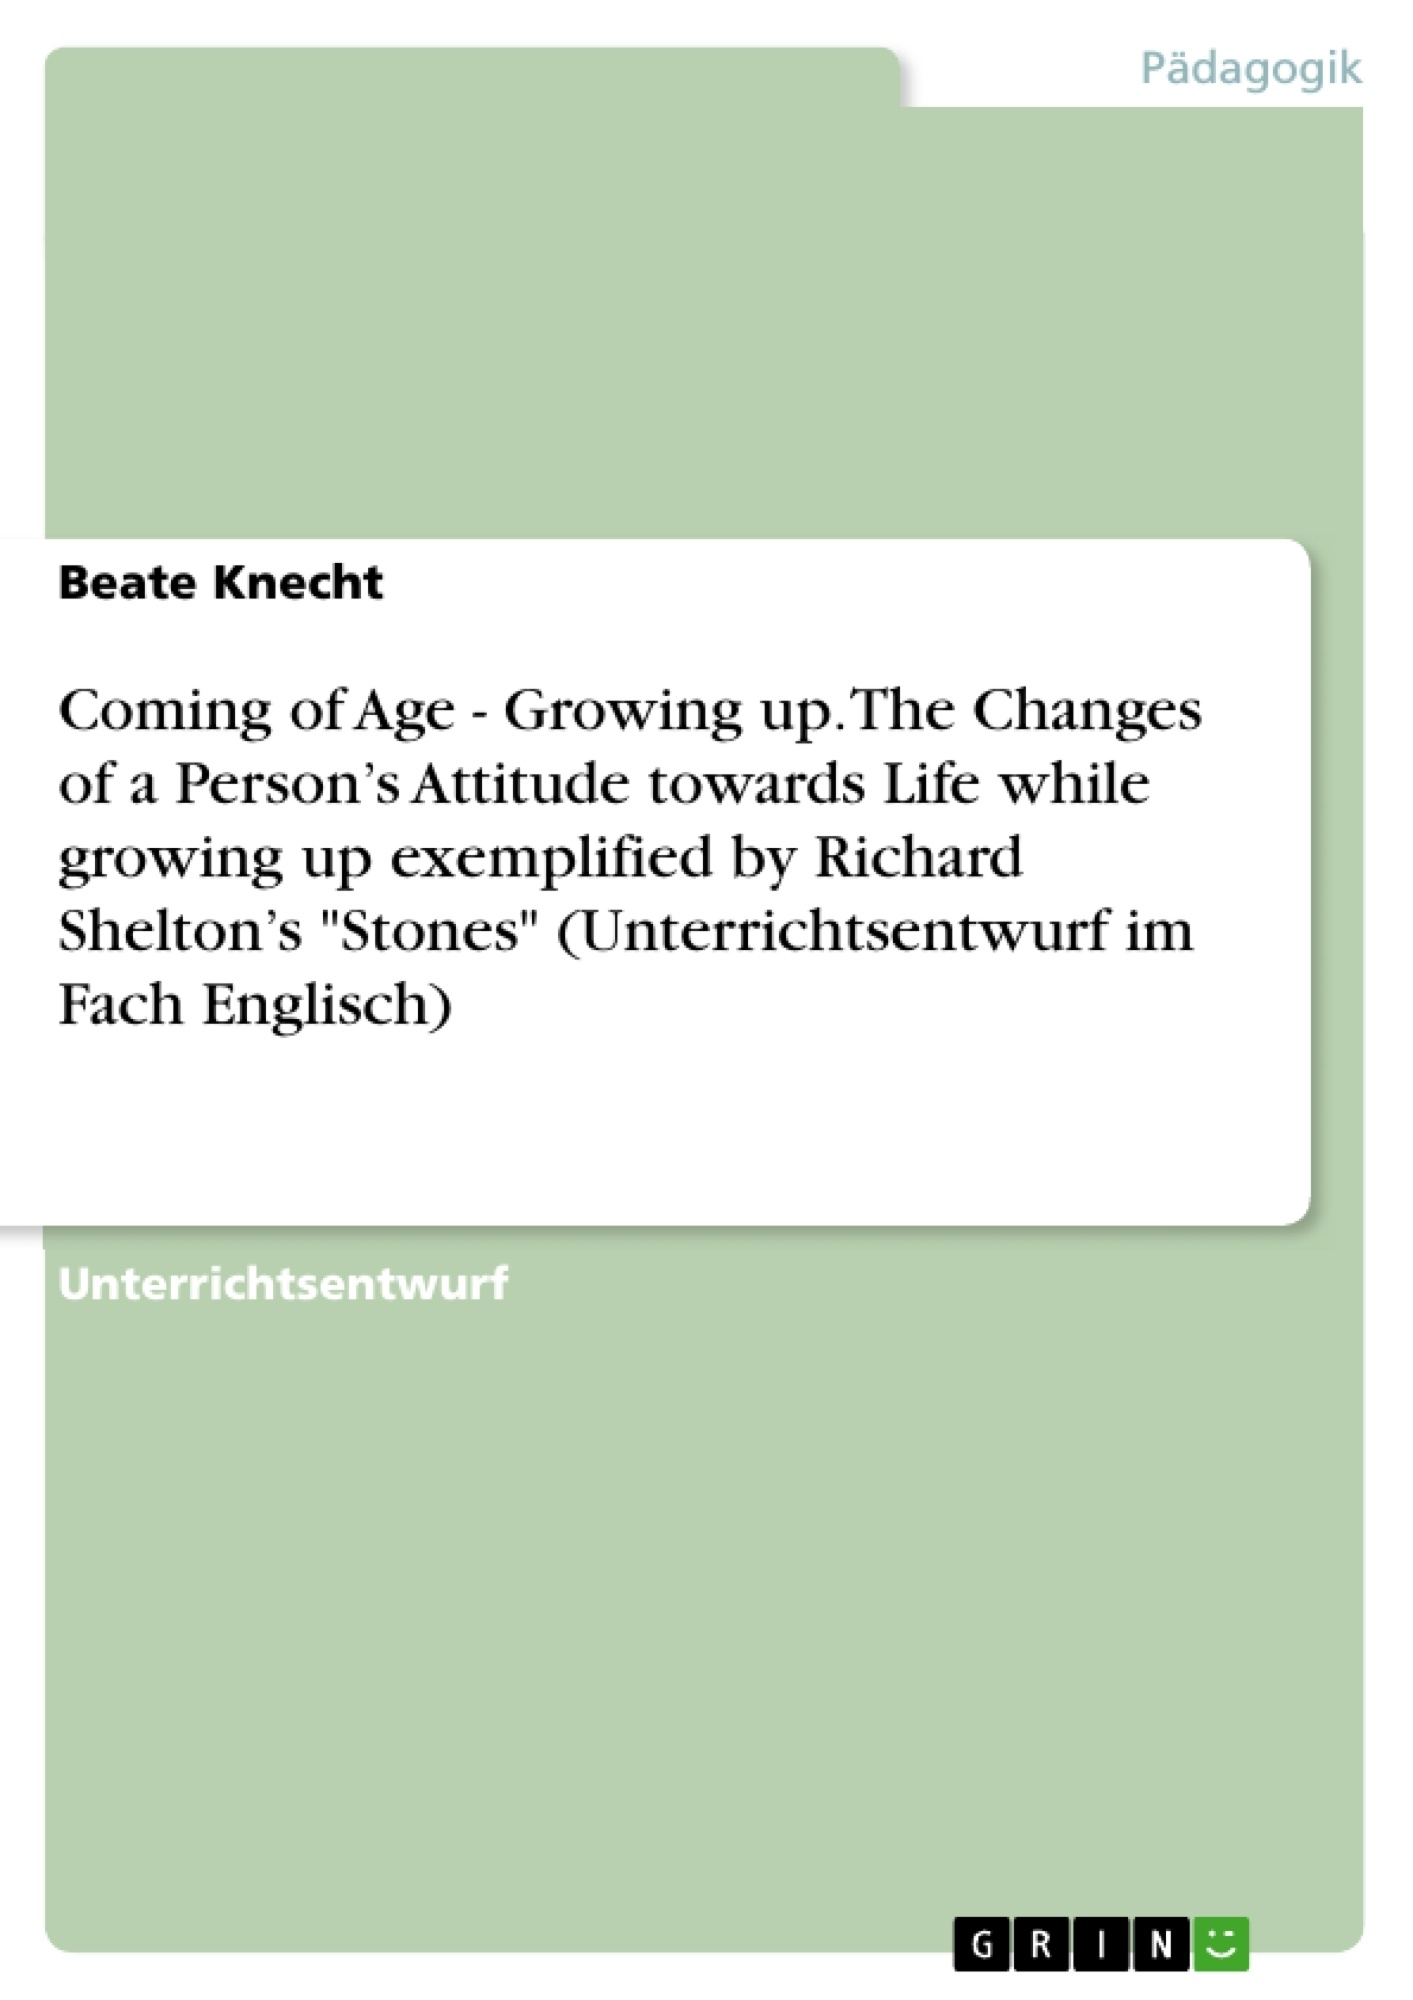 """Titel: Coming of Age - Growing up. The Changes of a Person's Attitude towards Life while growing up exemplified by Richard Shelton's """"Stones"""" (Unterrichtsentwurf im Fach Englisch)"""